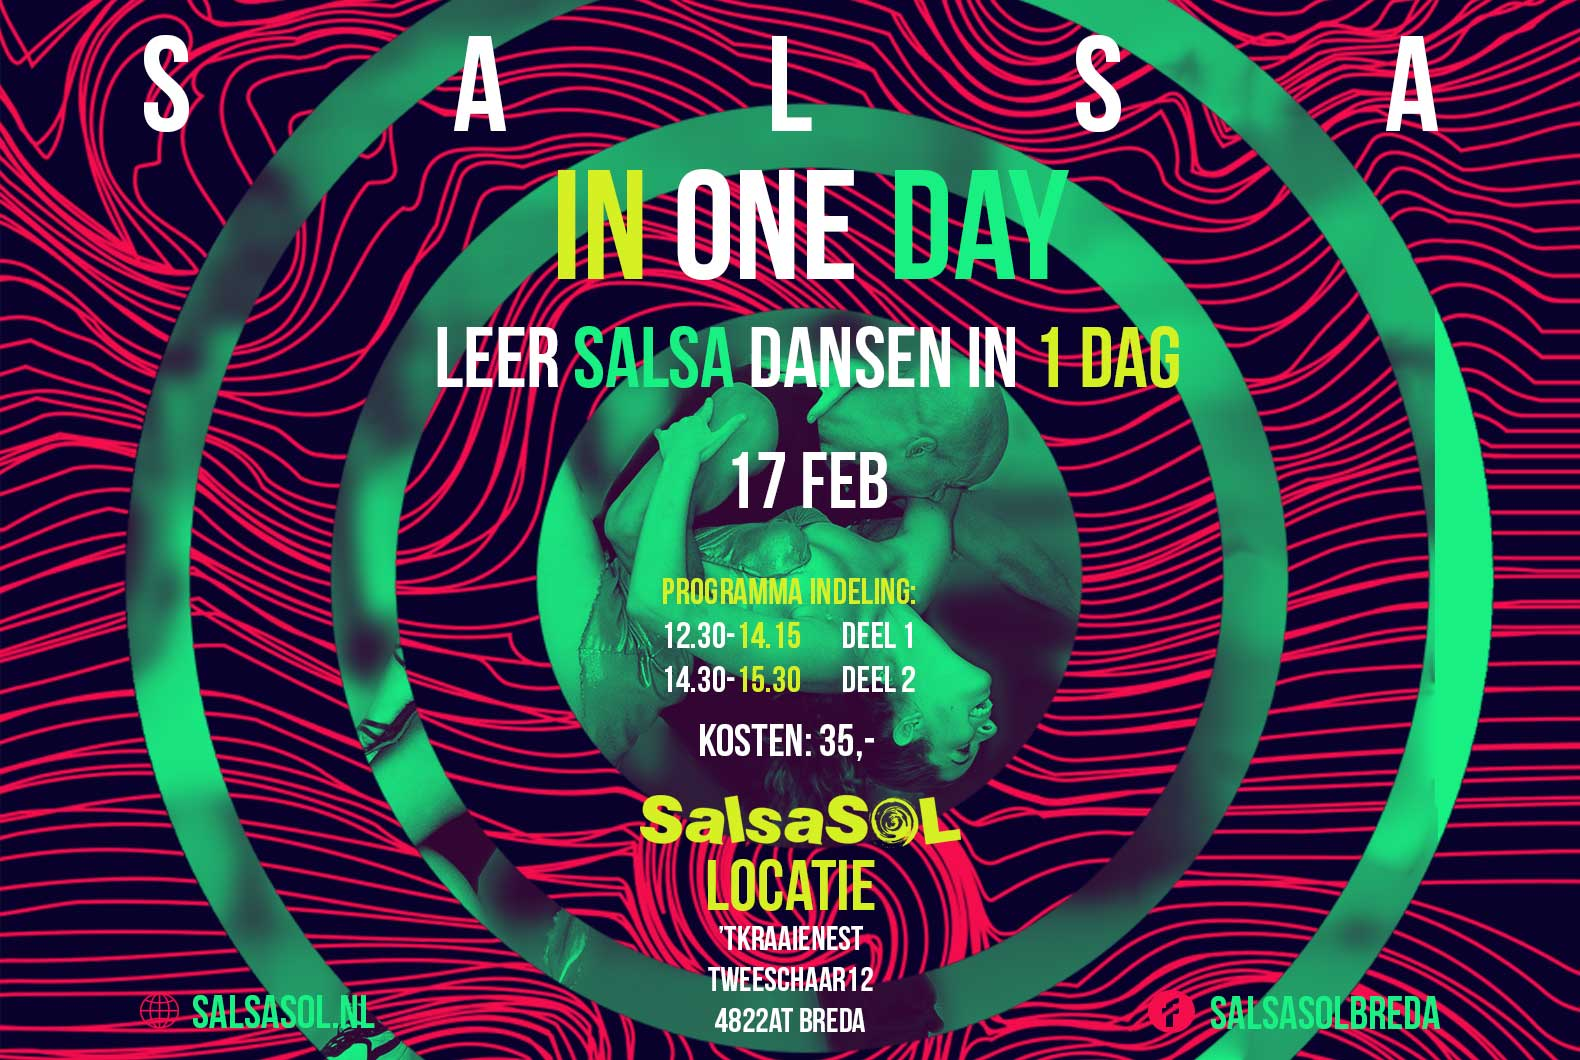 Salsa in One Day